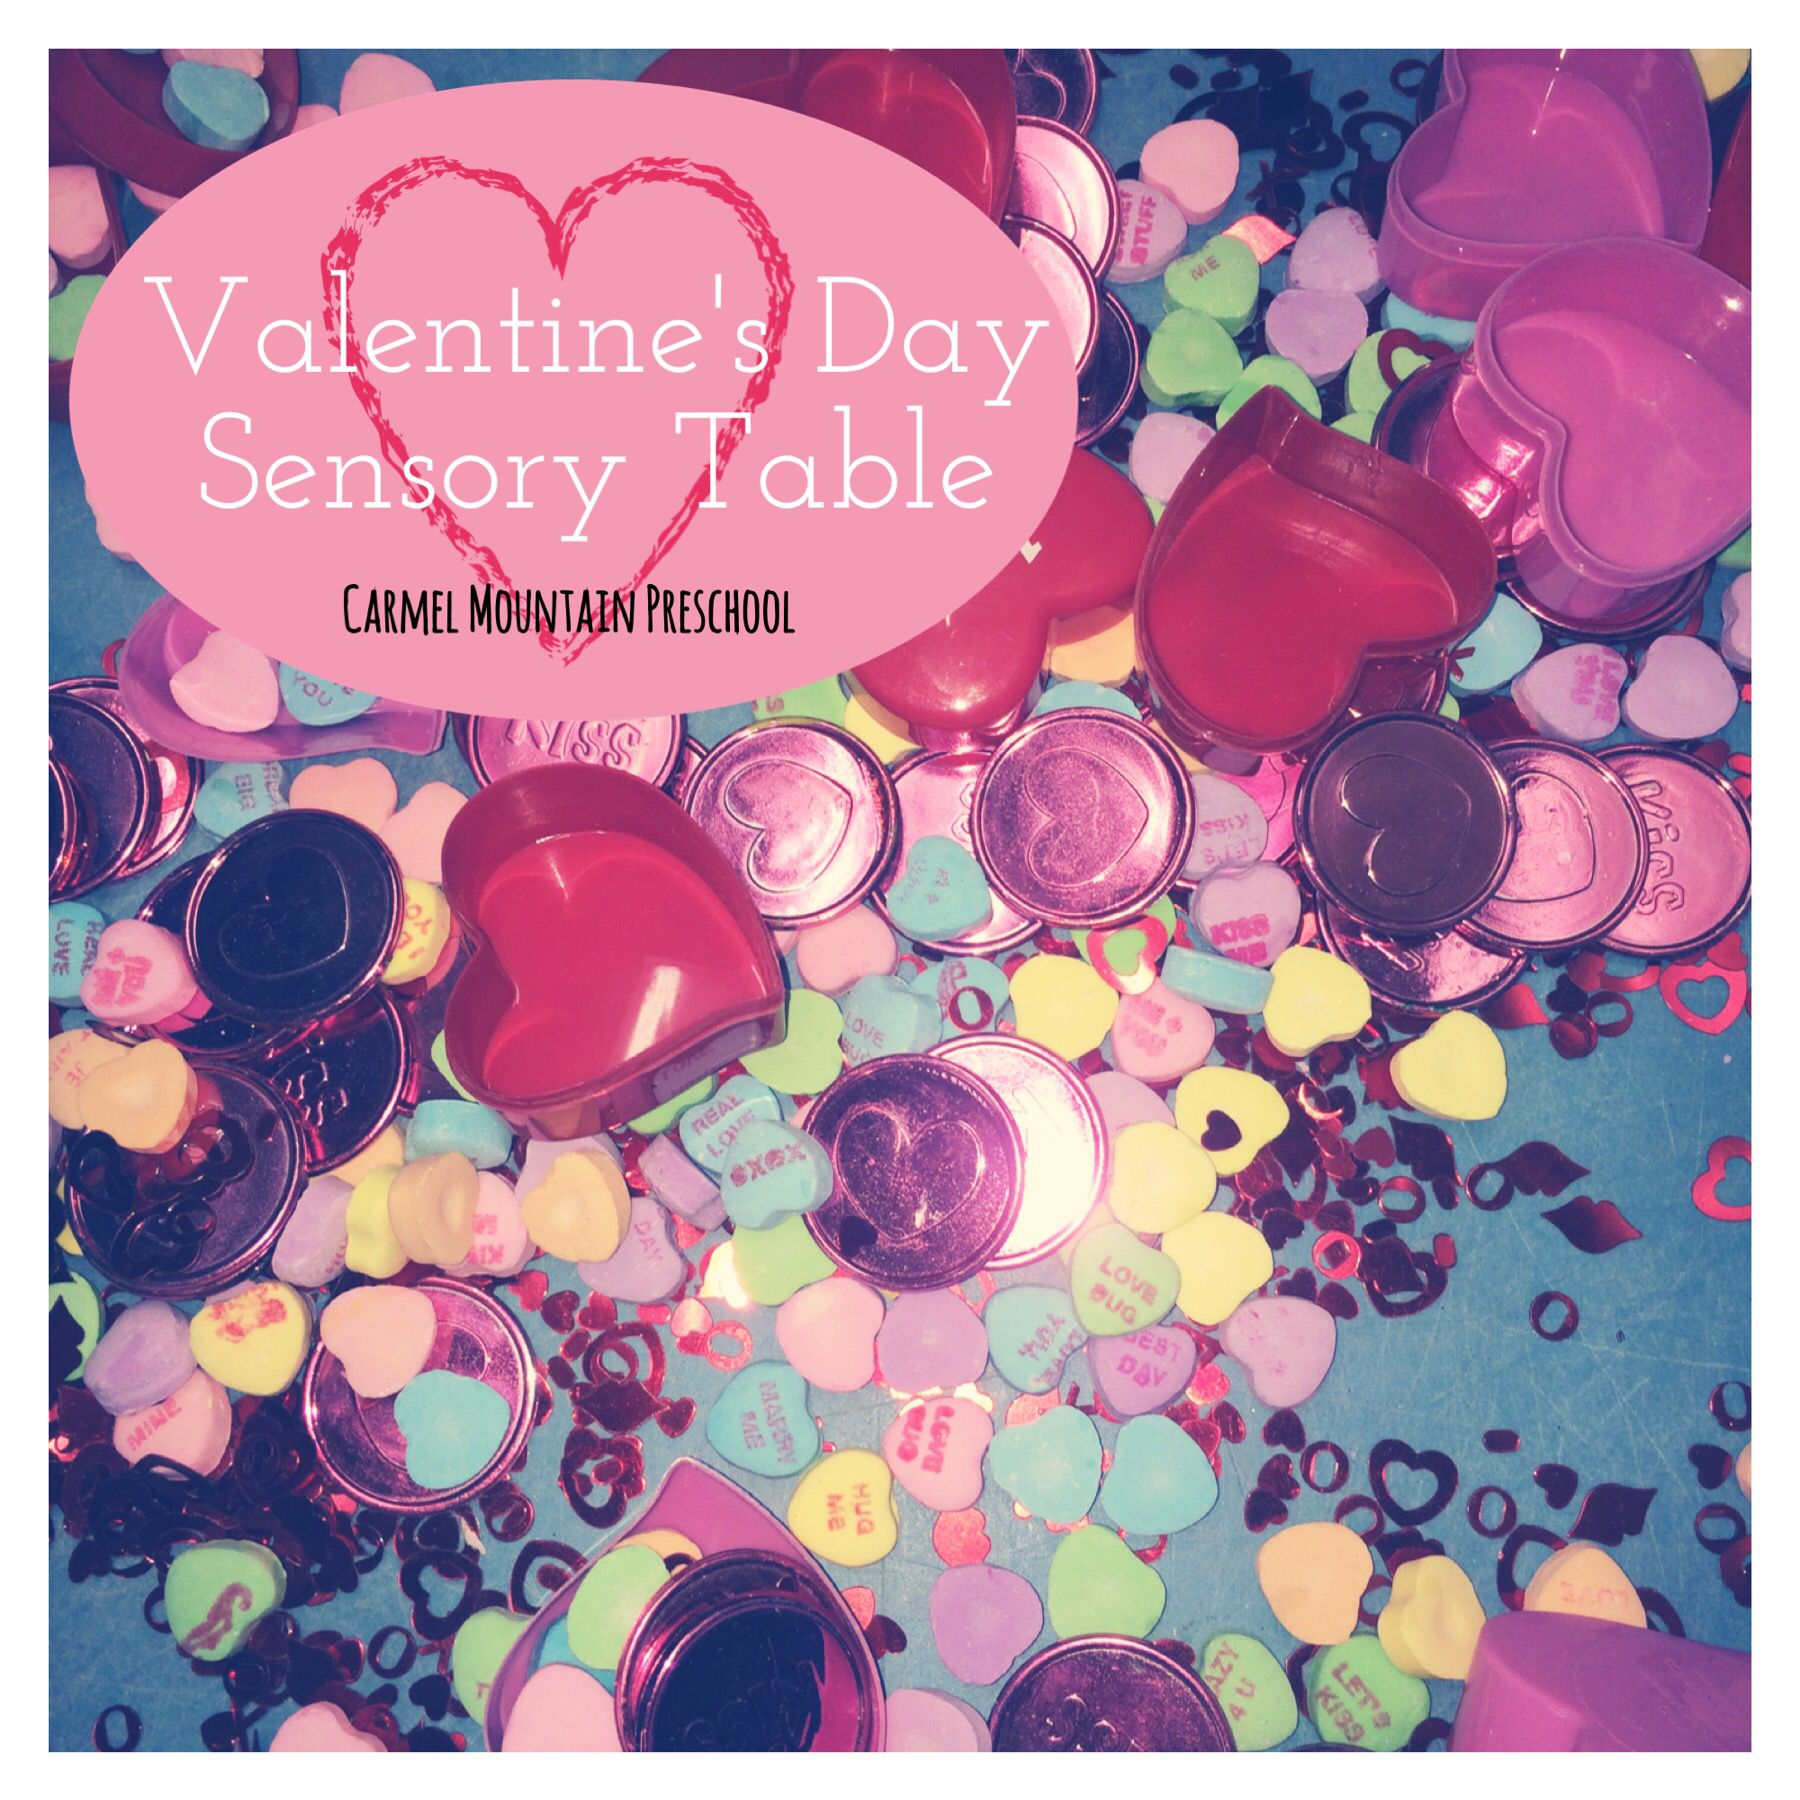 Use Candy Hearts Heart Coins Heart Sequins Containers